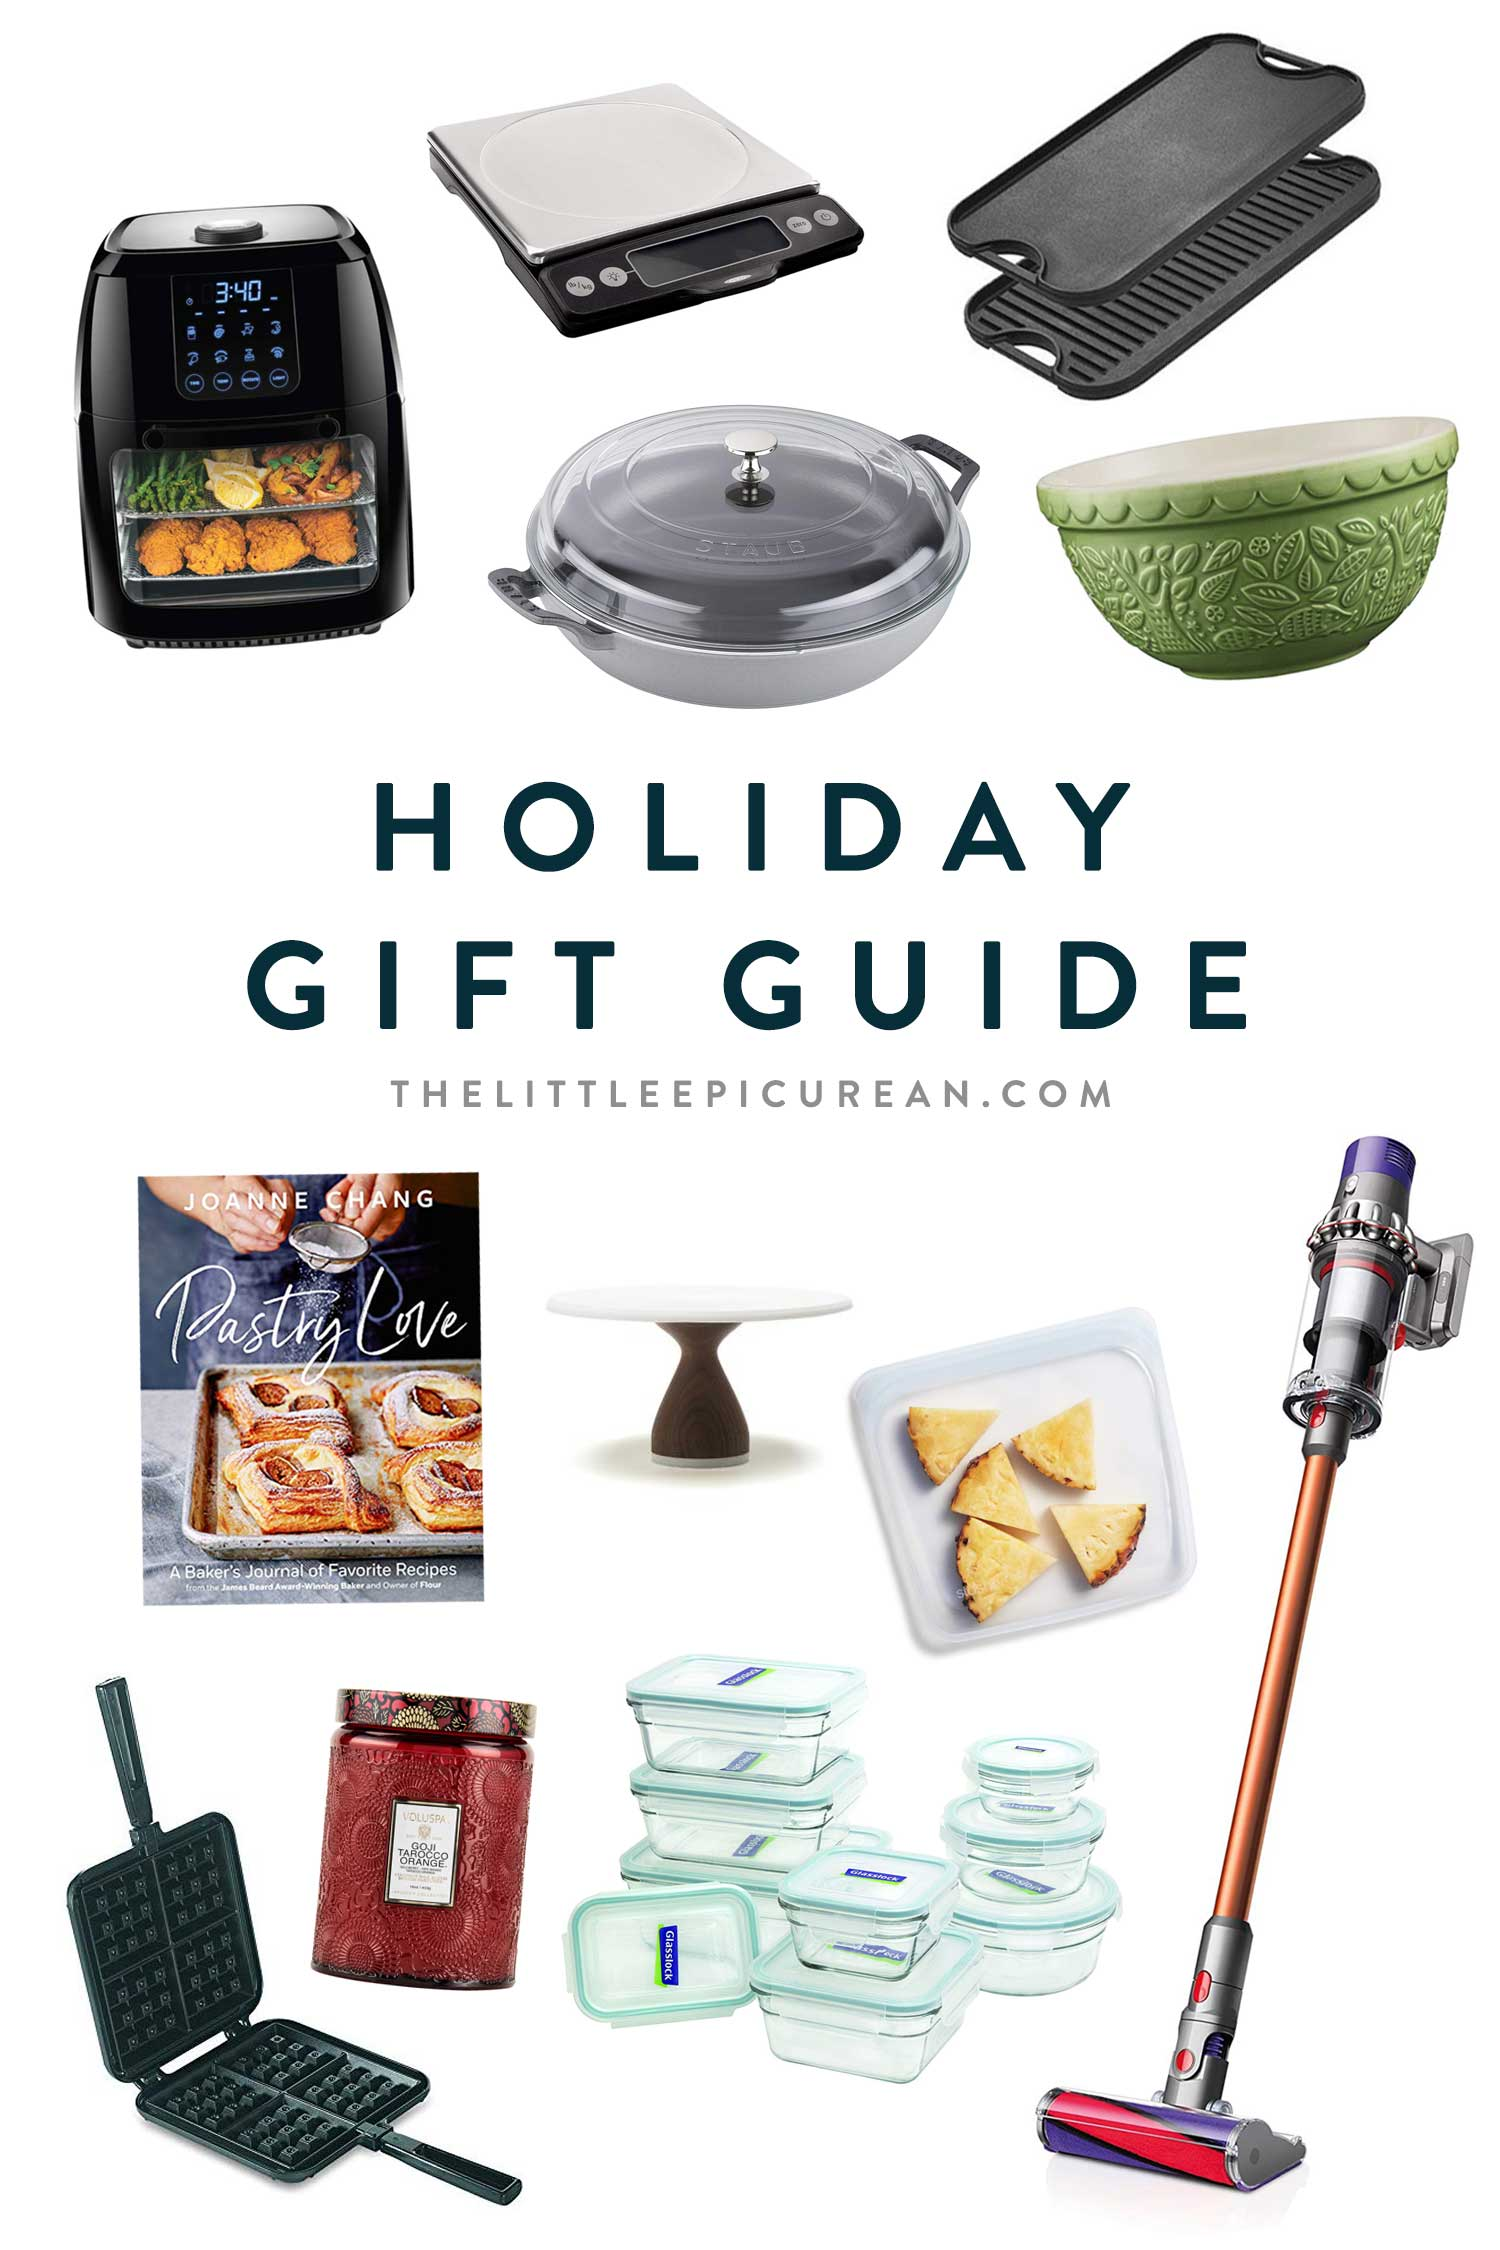 Holiday Gift Guide for Foodies, Cooks, and Bakers #holiday #giftgiving #kitchengadgets #giftguide